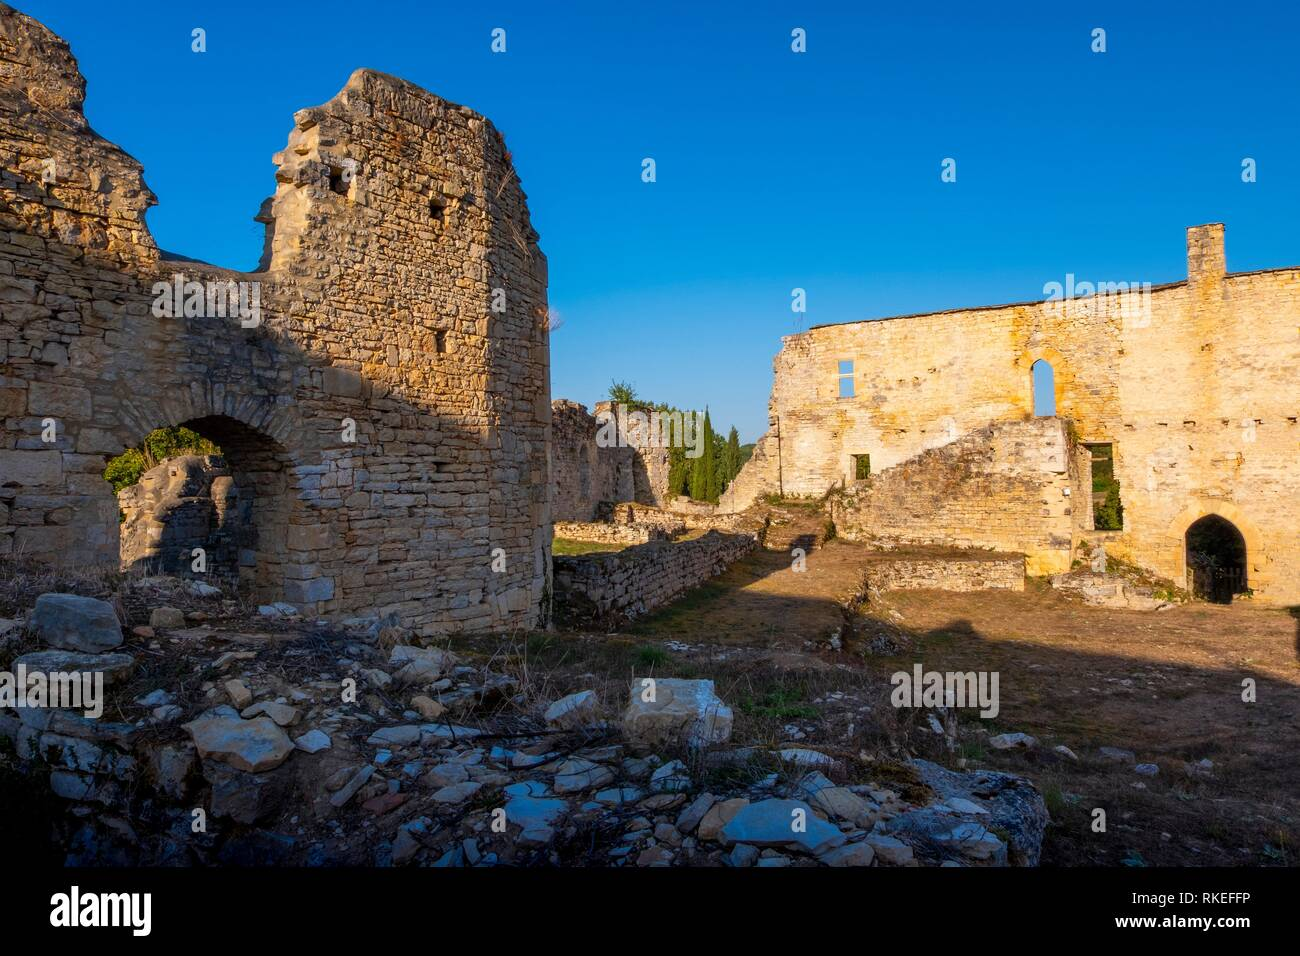 France, Occitanie, Lot, ruins of the ''Nouvelle Abbaye'', 15th Century, by Salviac. Pilgrimage way to Santiago de Compostela. - Stock Image